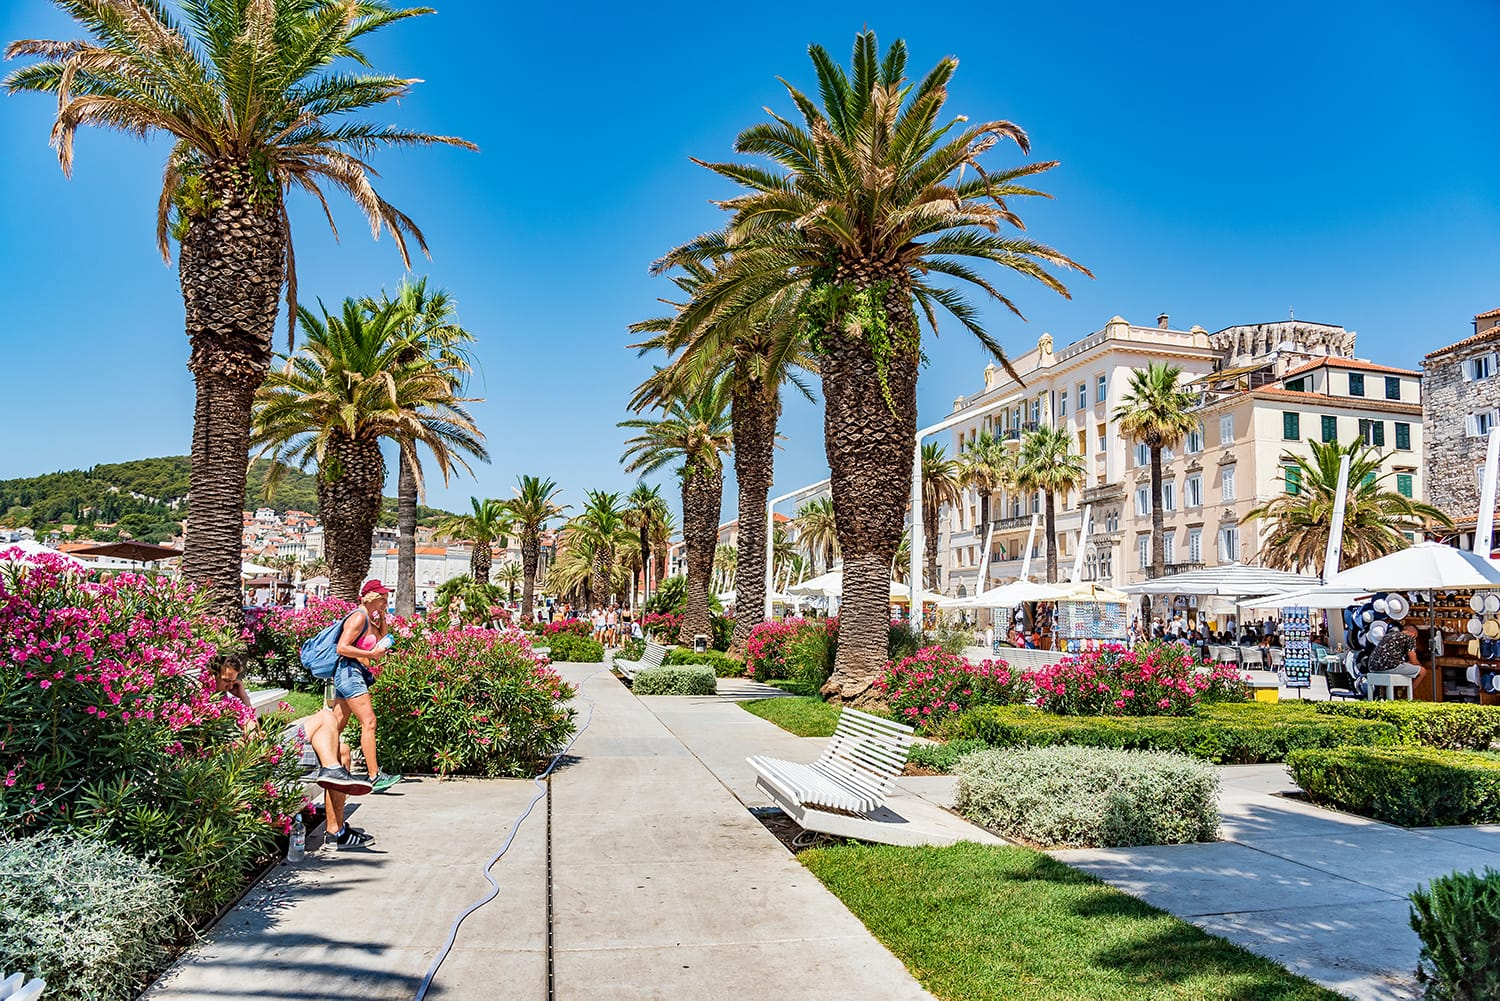 Riva promenade in Split, Croatia